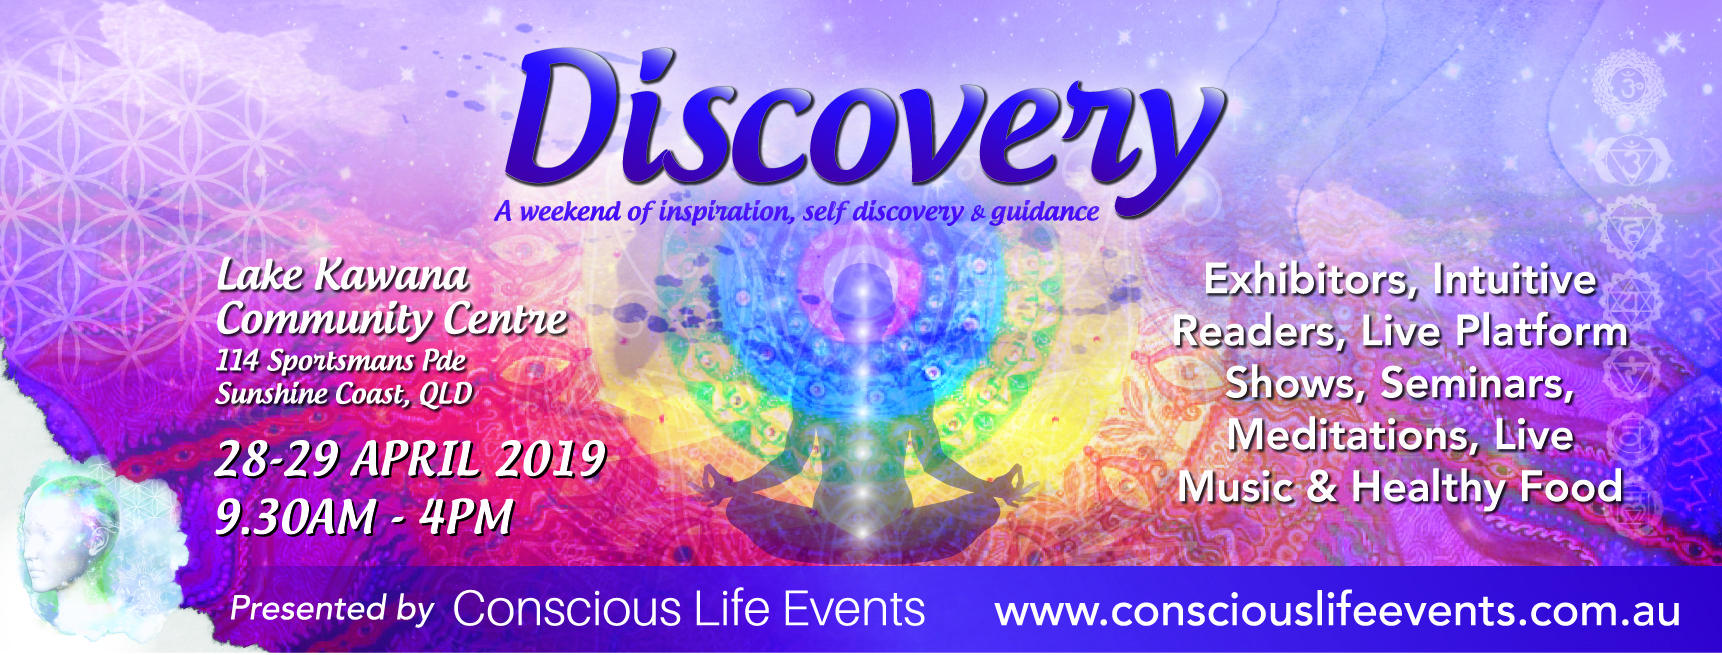 2019 Discovery_Cover Photo